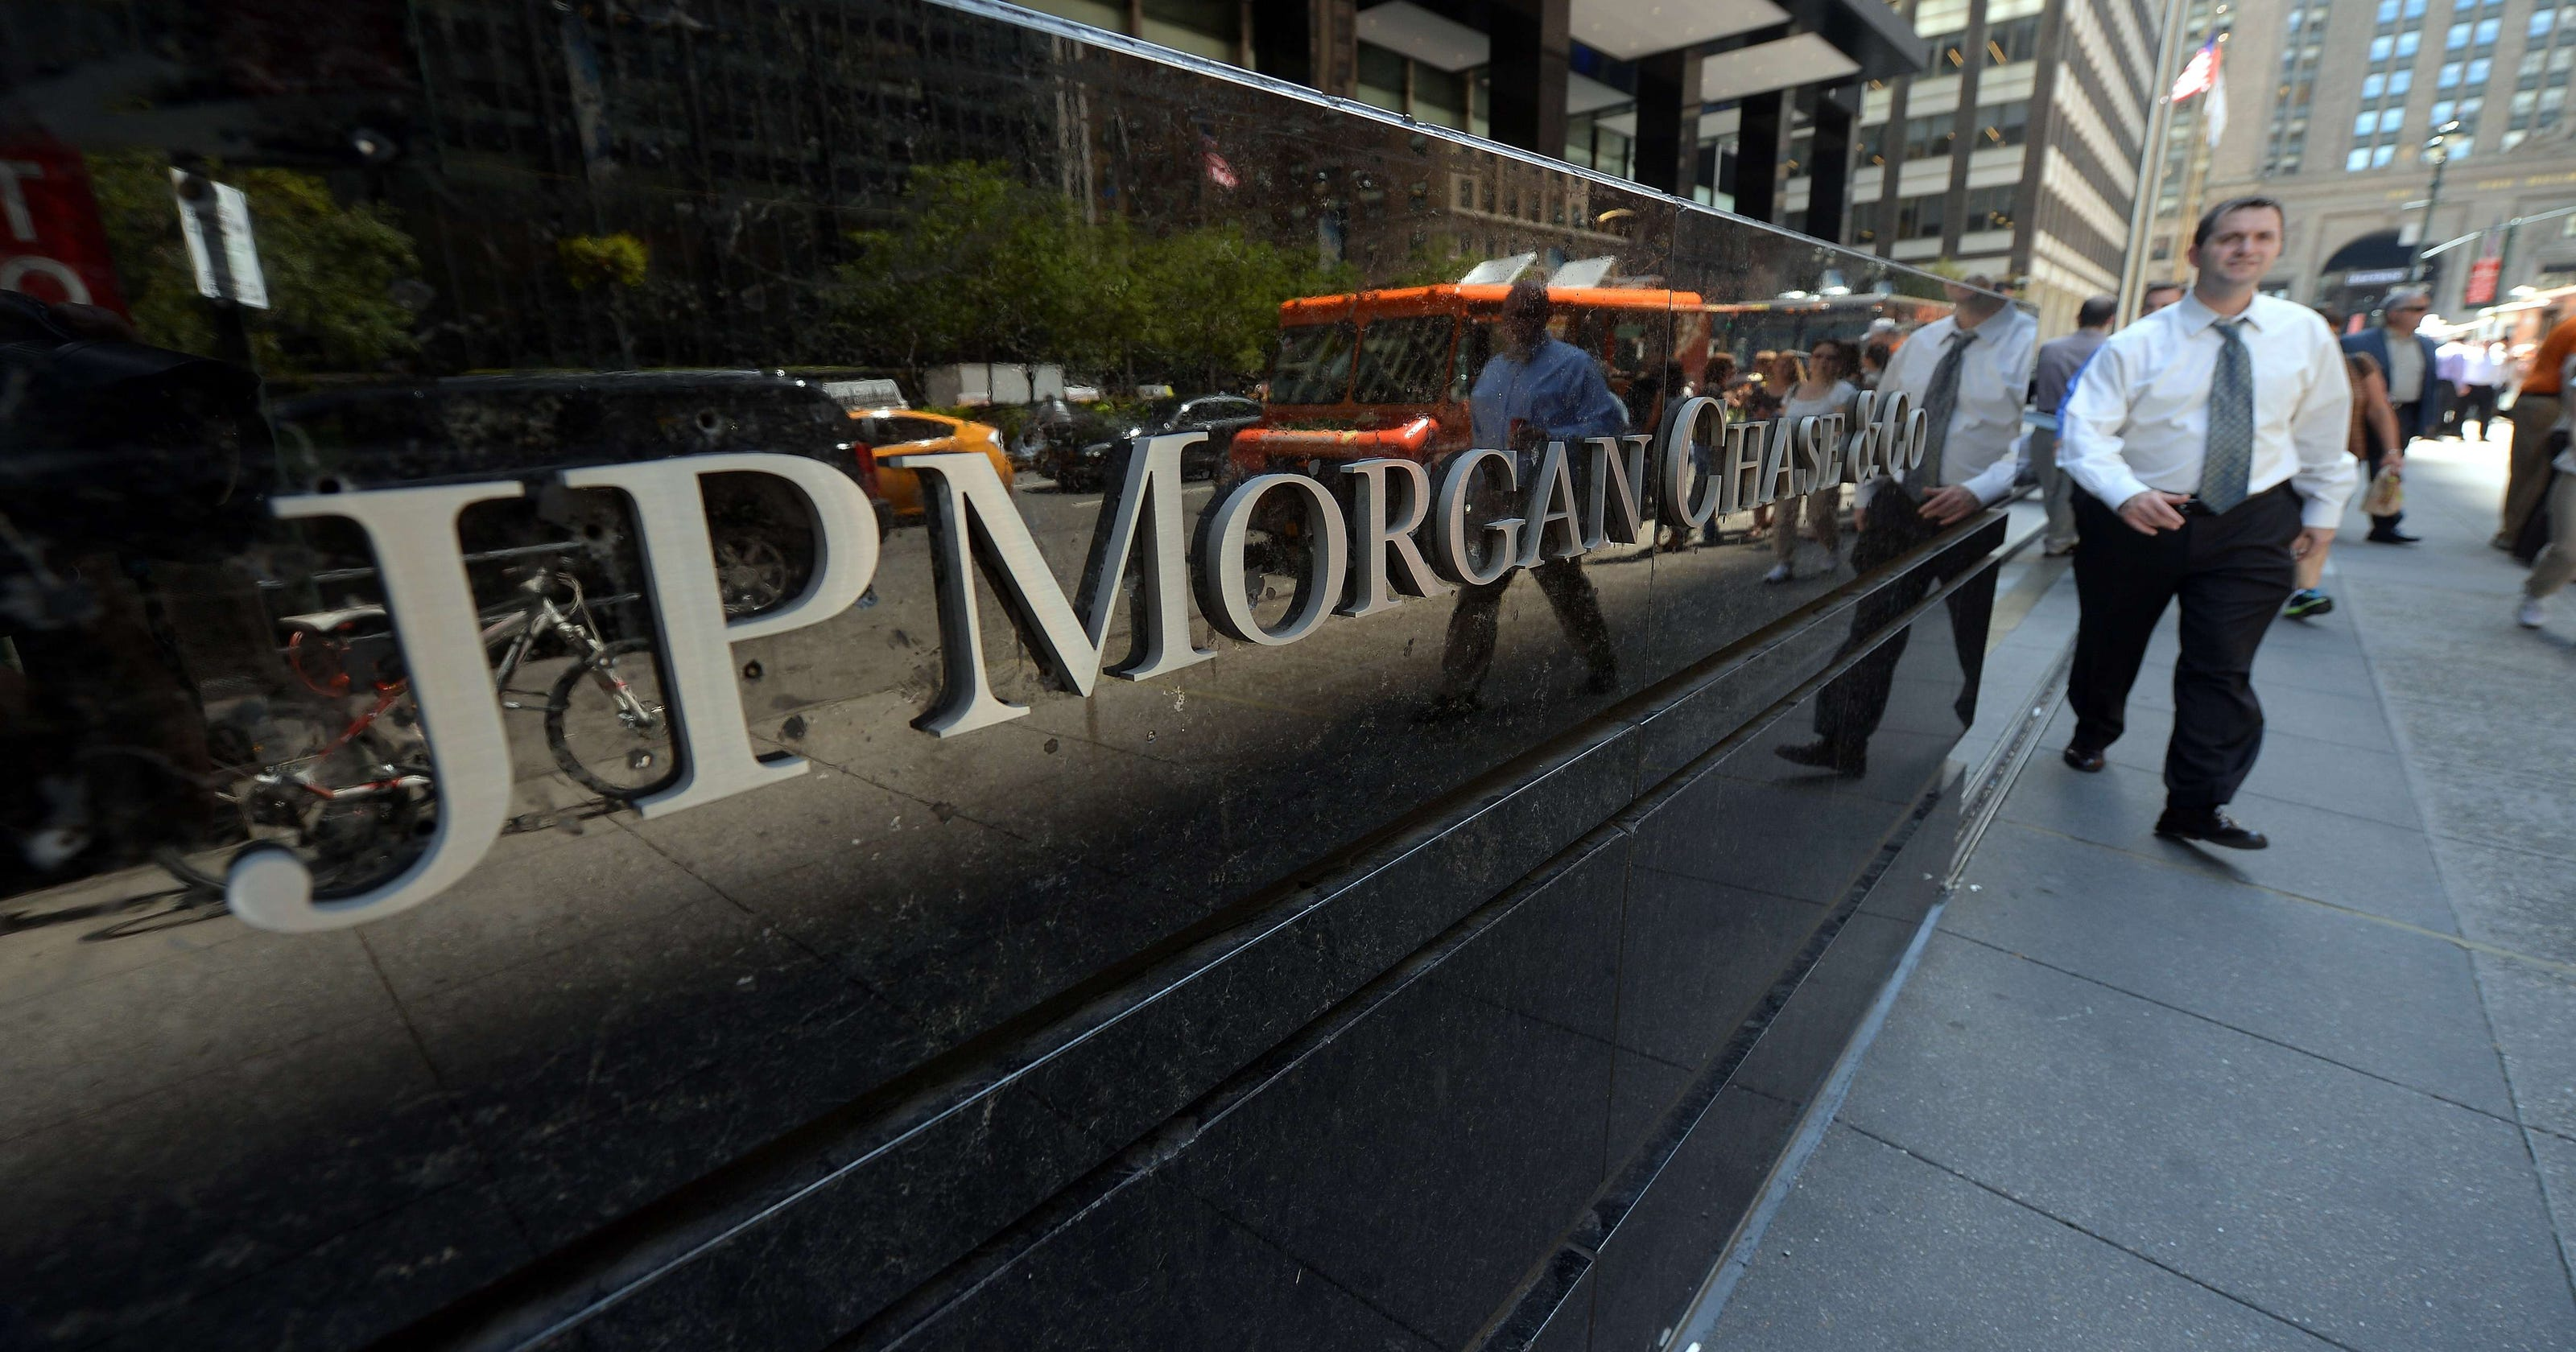 JPMorgan Chase app will allow investors to trade – for free